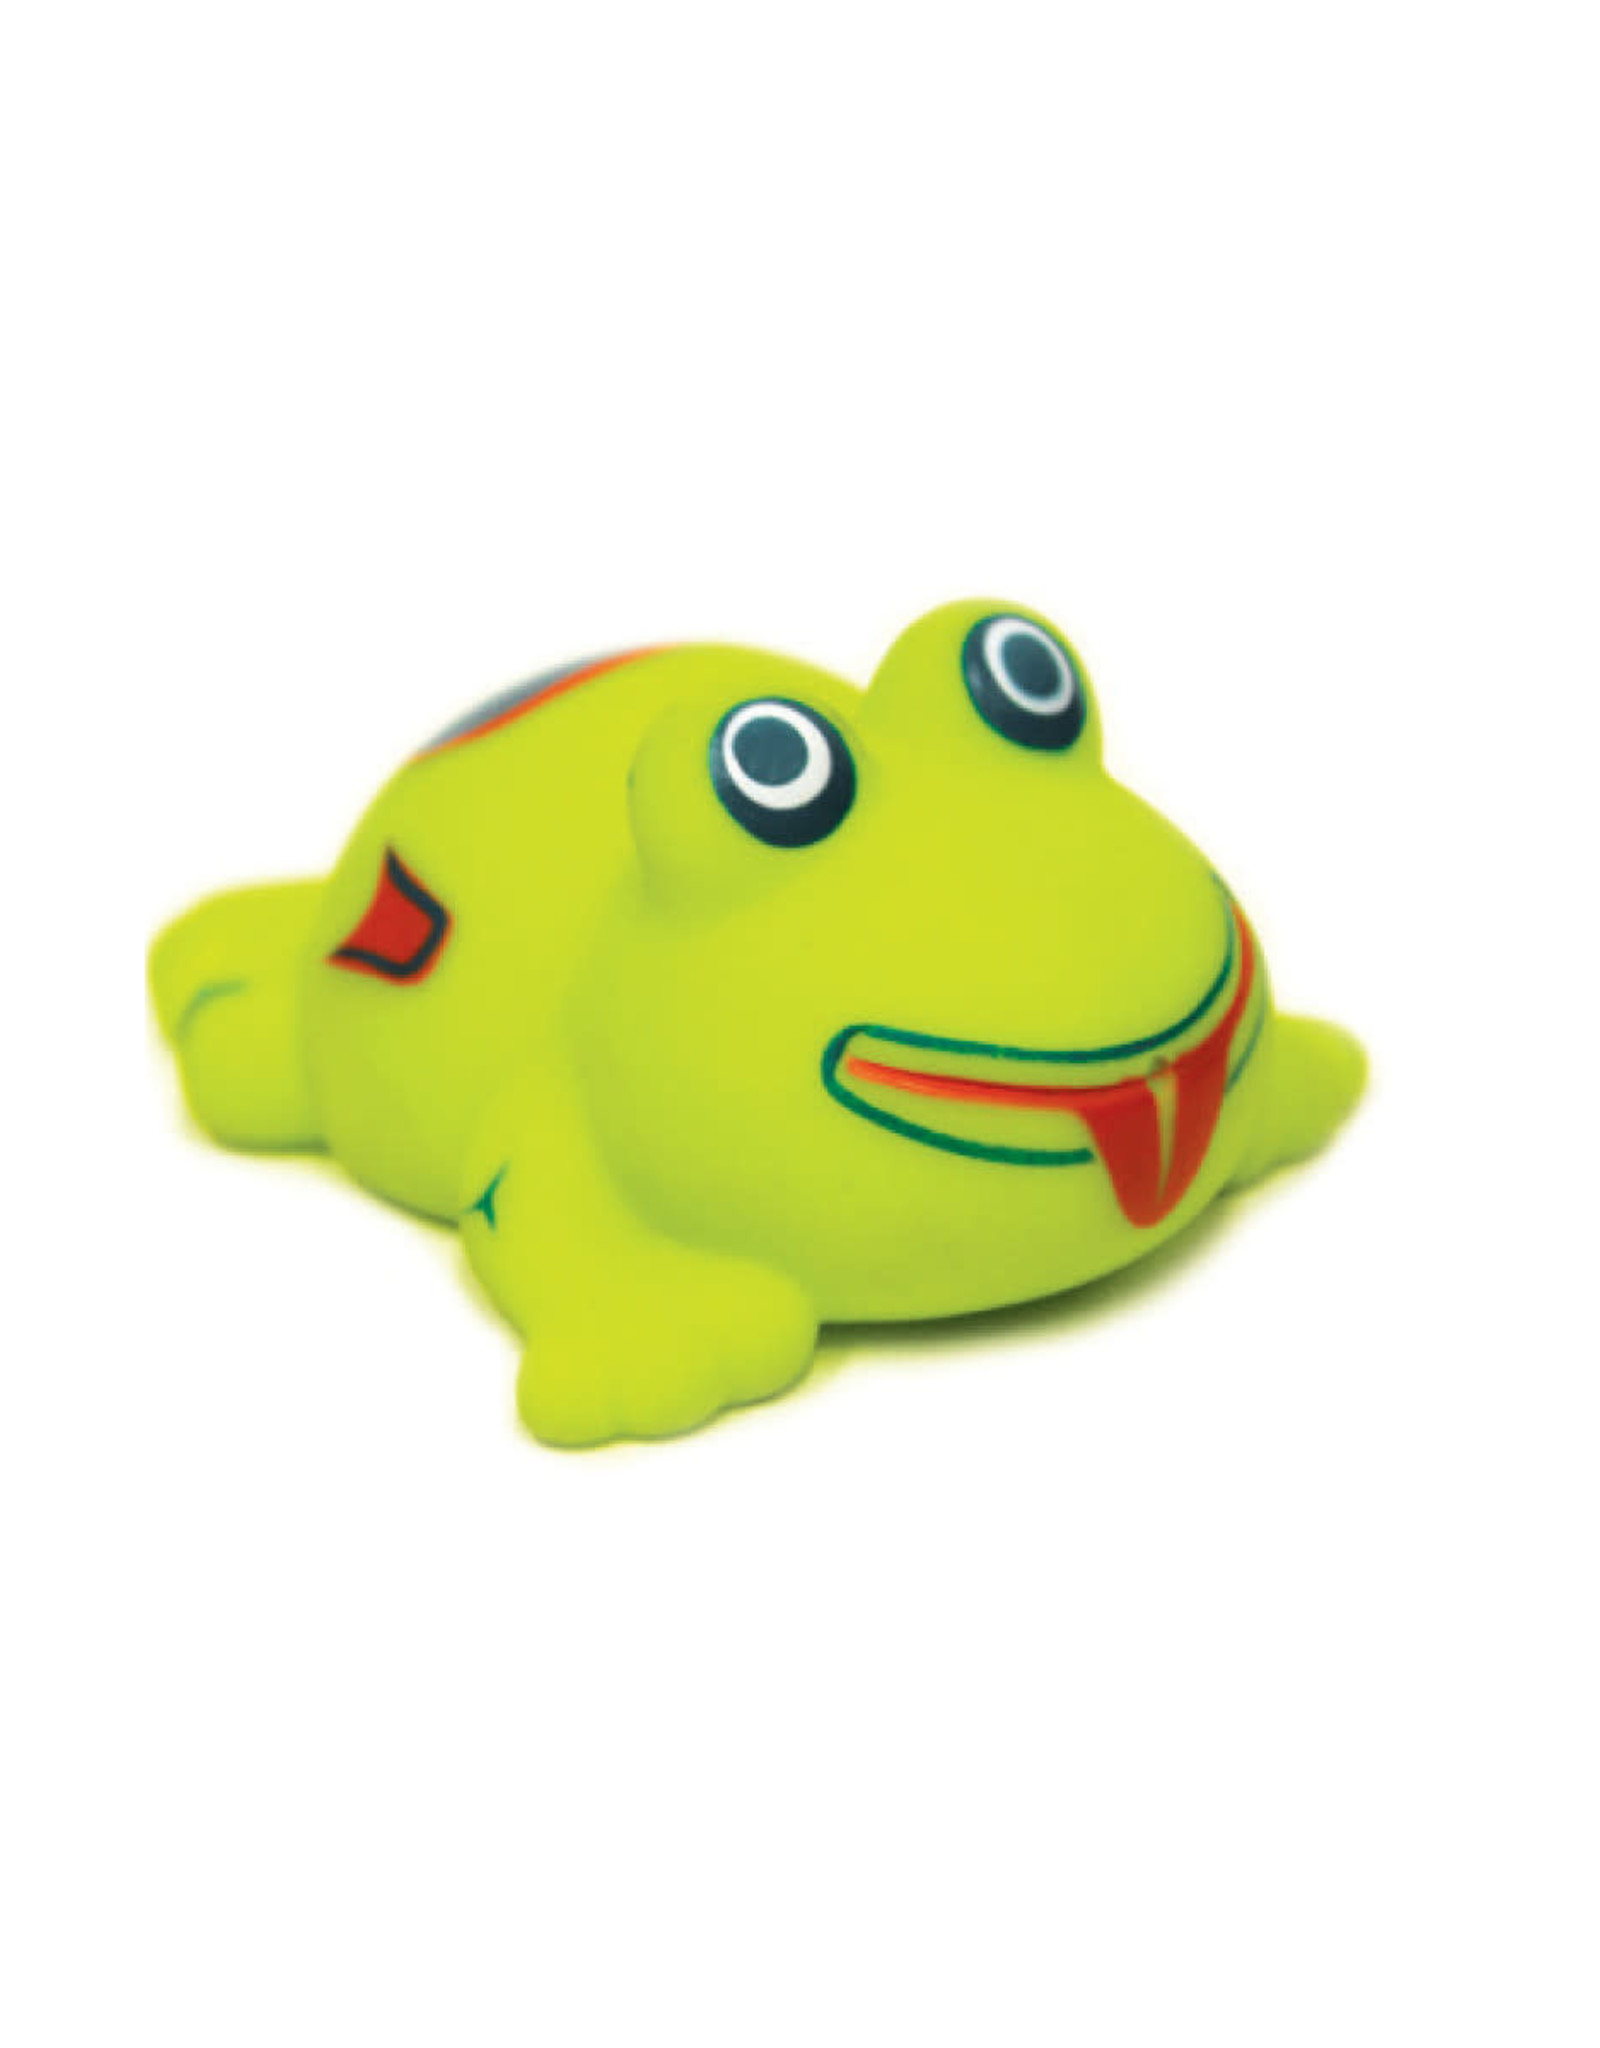 Children's Bath Toy